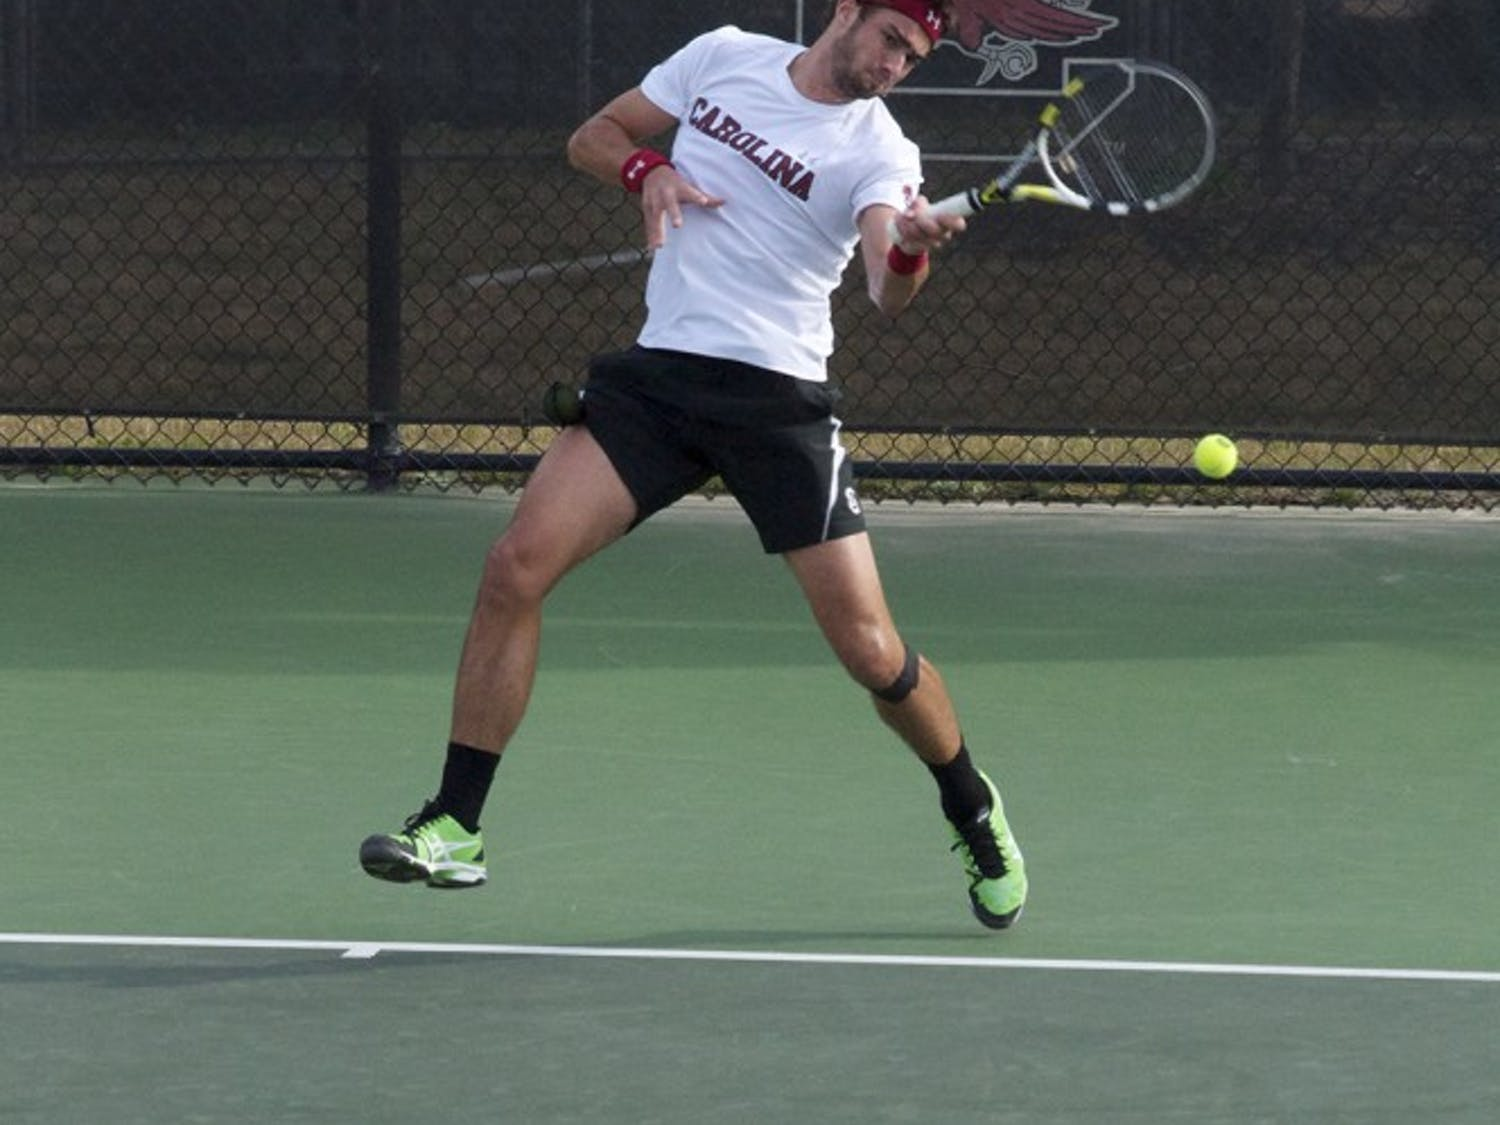 Sophomore Thiago Pinheiro rallied to win his match's second and third sets to help the Gamecocks advance to the second round of the SEC Tournament.